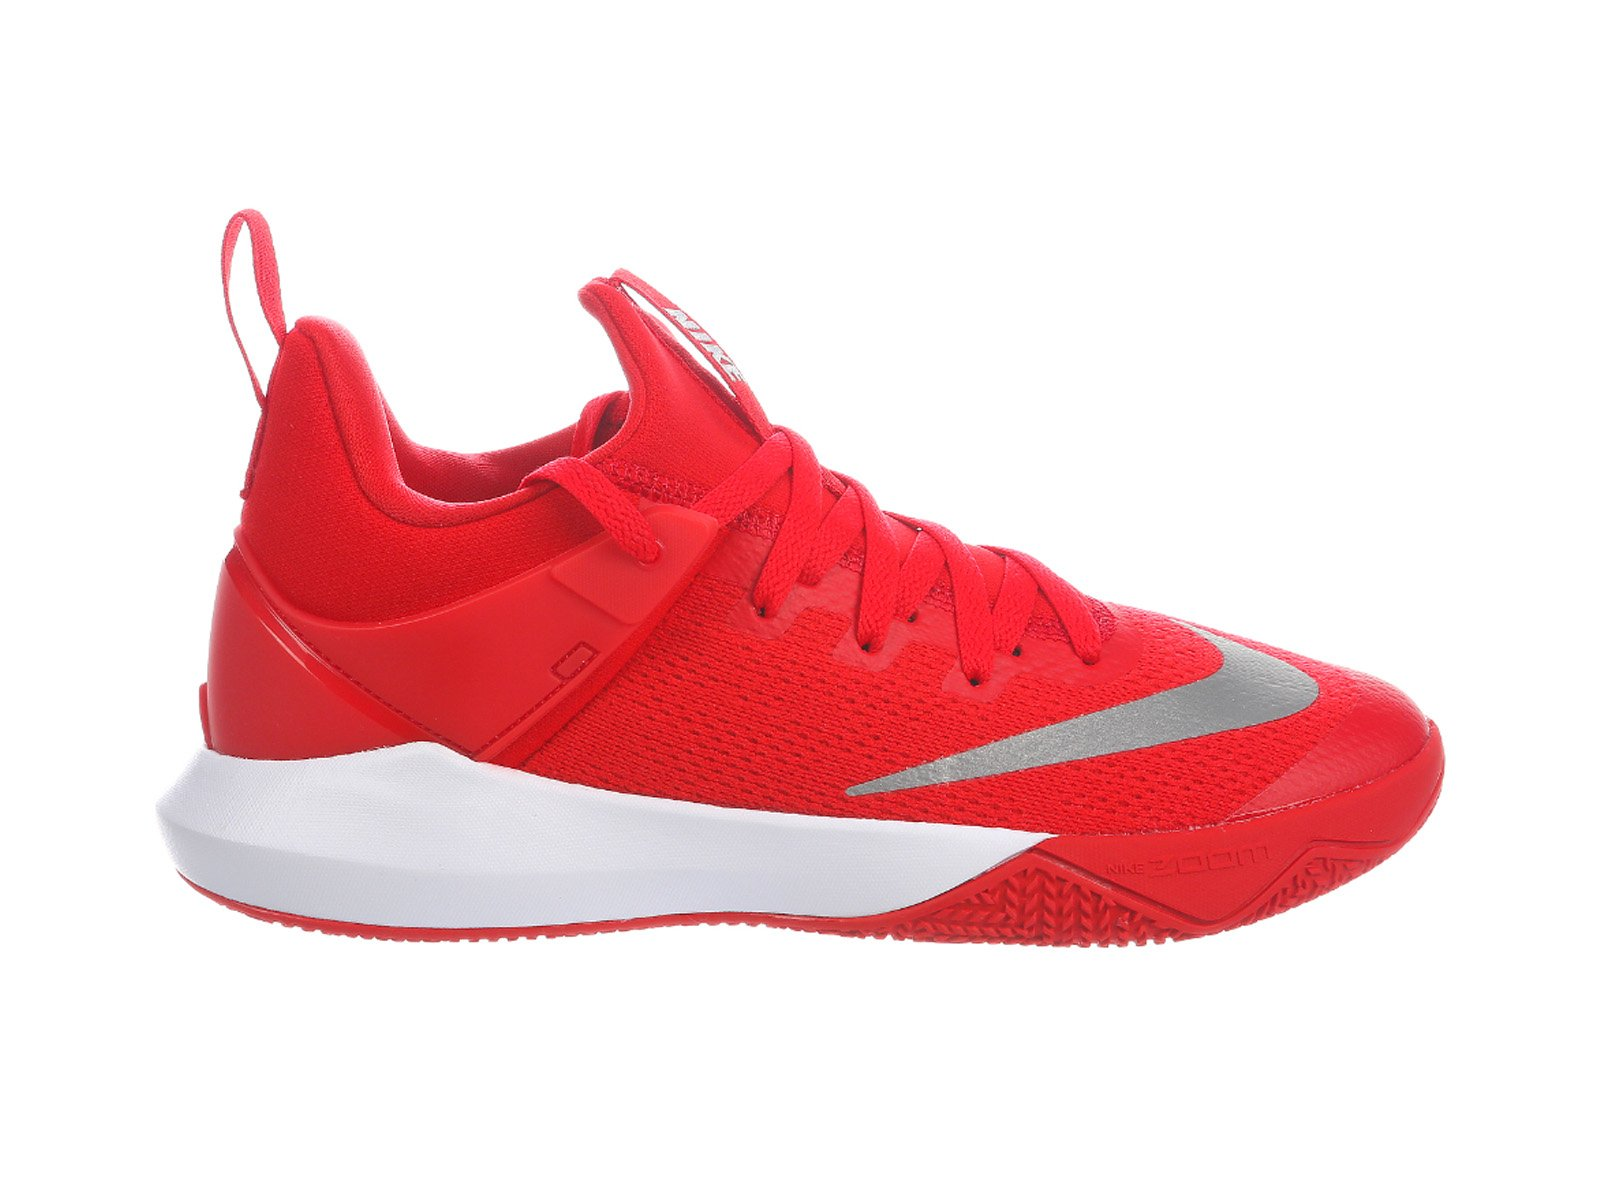 257effc4cae Galleon - NIKE Men s Zoom Shift University Red White Nylon Basketball Shoes  17 D(M) US